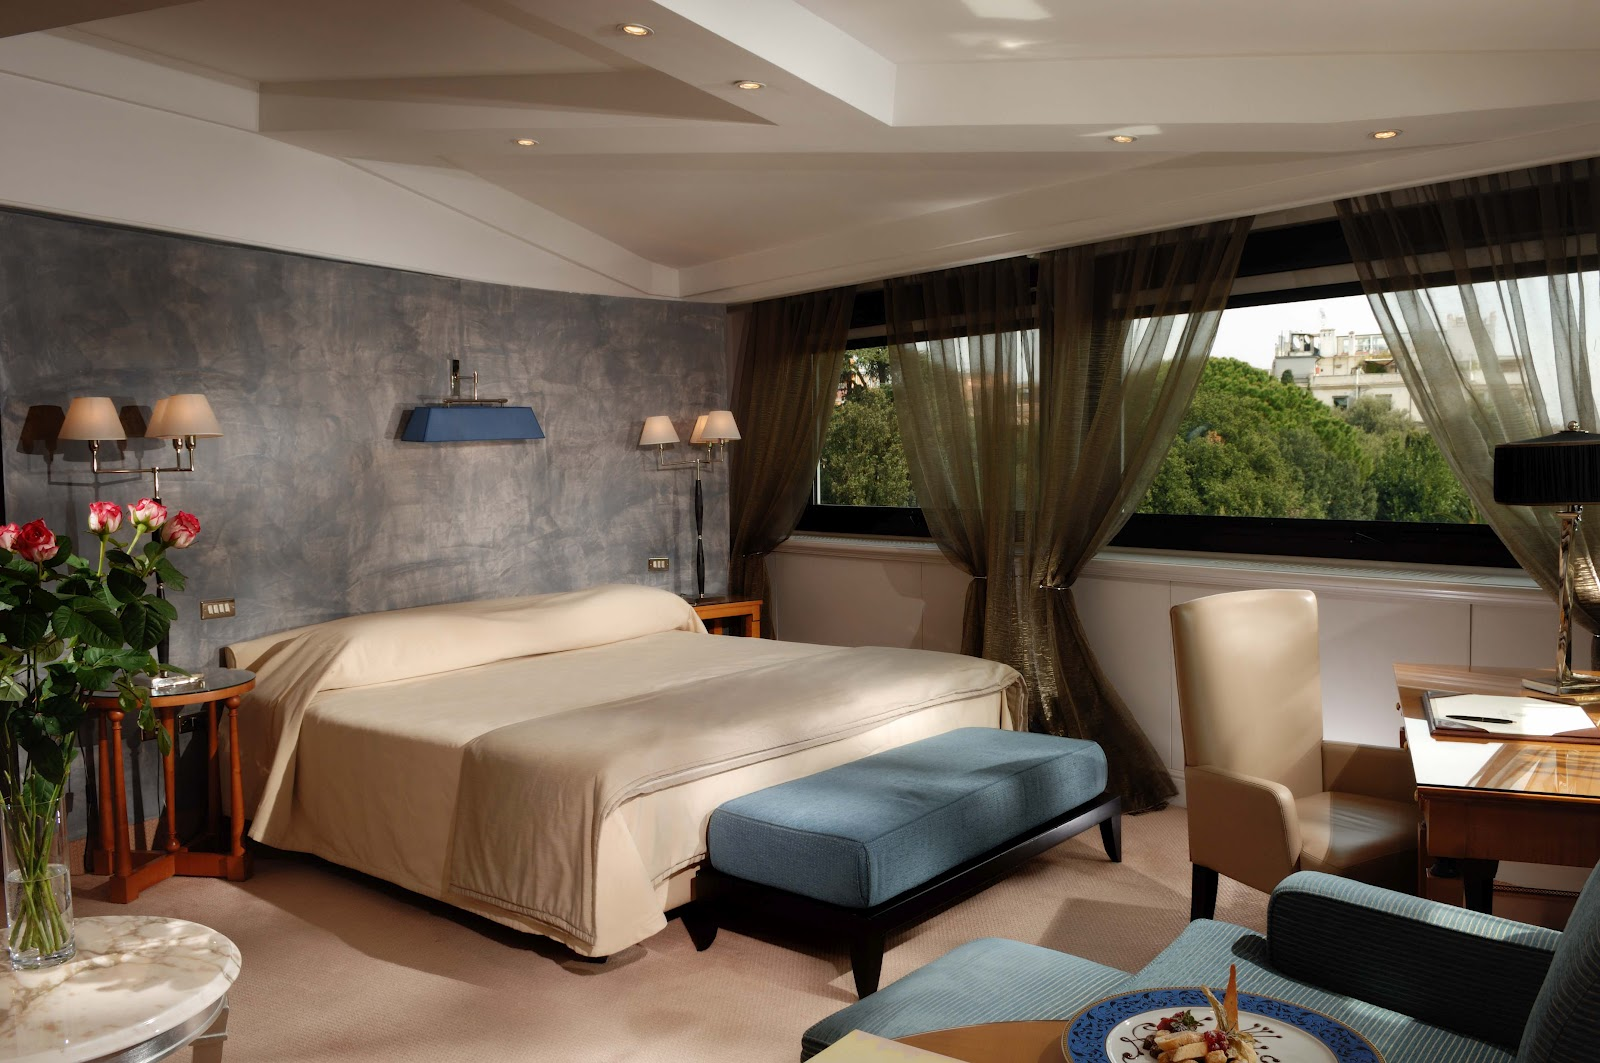 Luxury adult rooms ideas wonderful for Bedroom suite decorating ideas